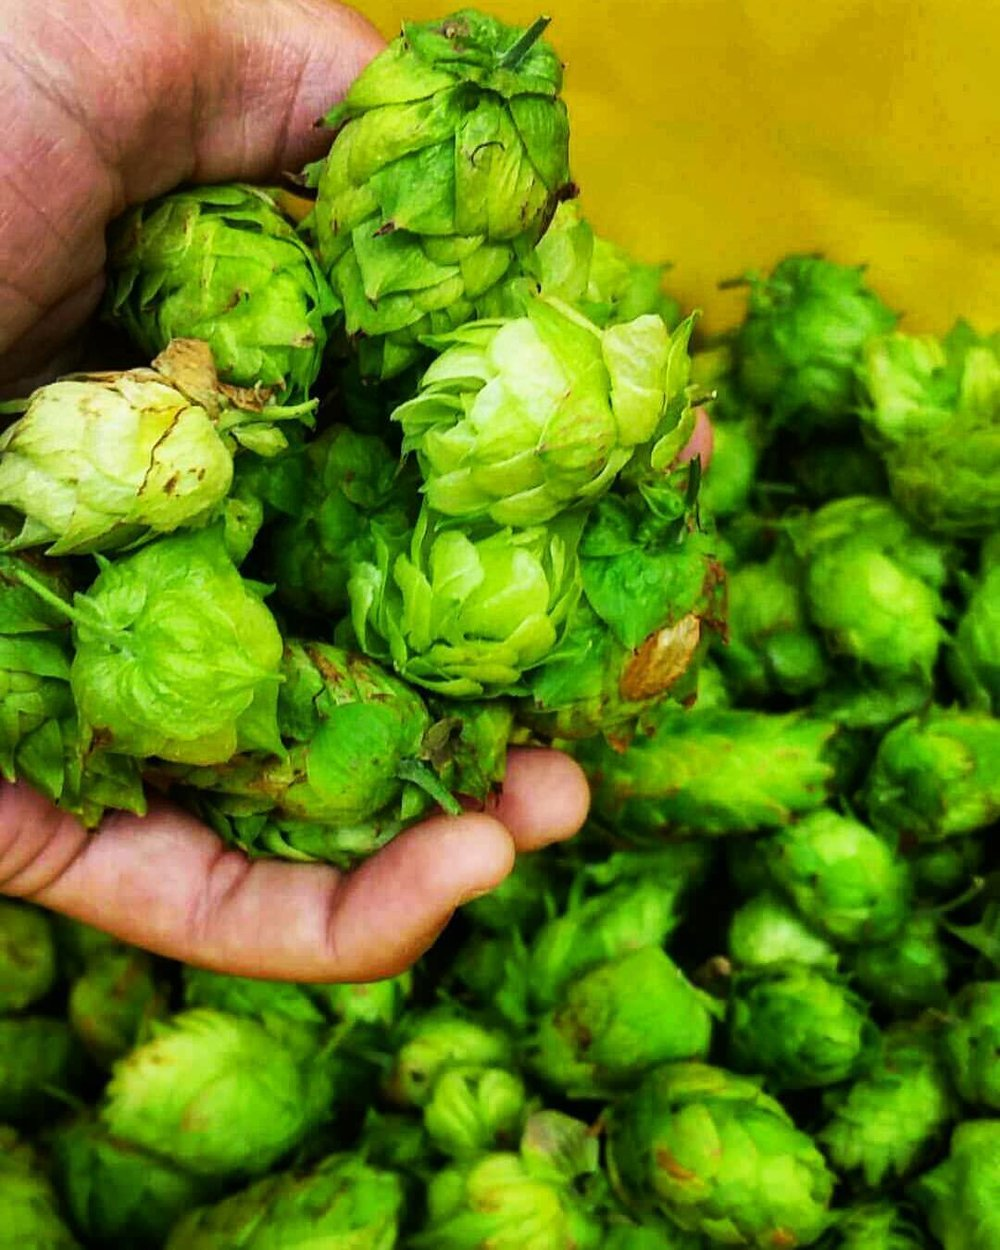 Hops grown at the Norfolk Botanical Garden. Photo courtesy of Alexandra Cantwell